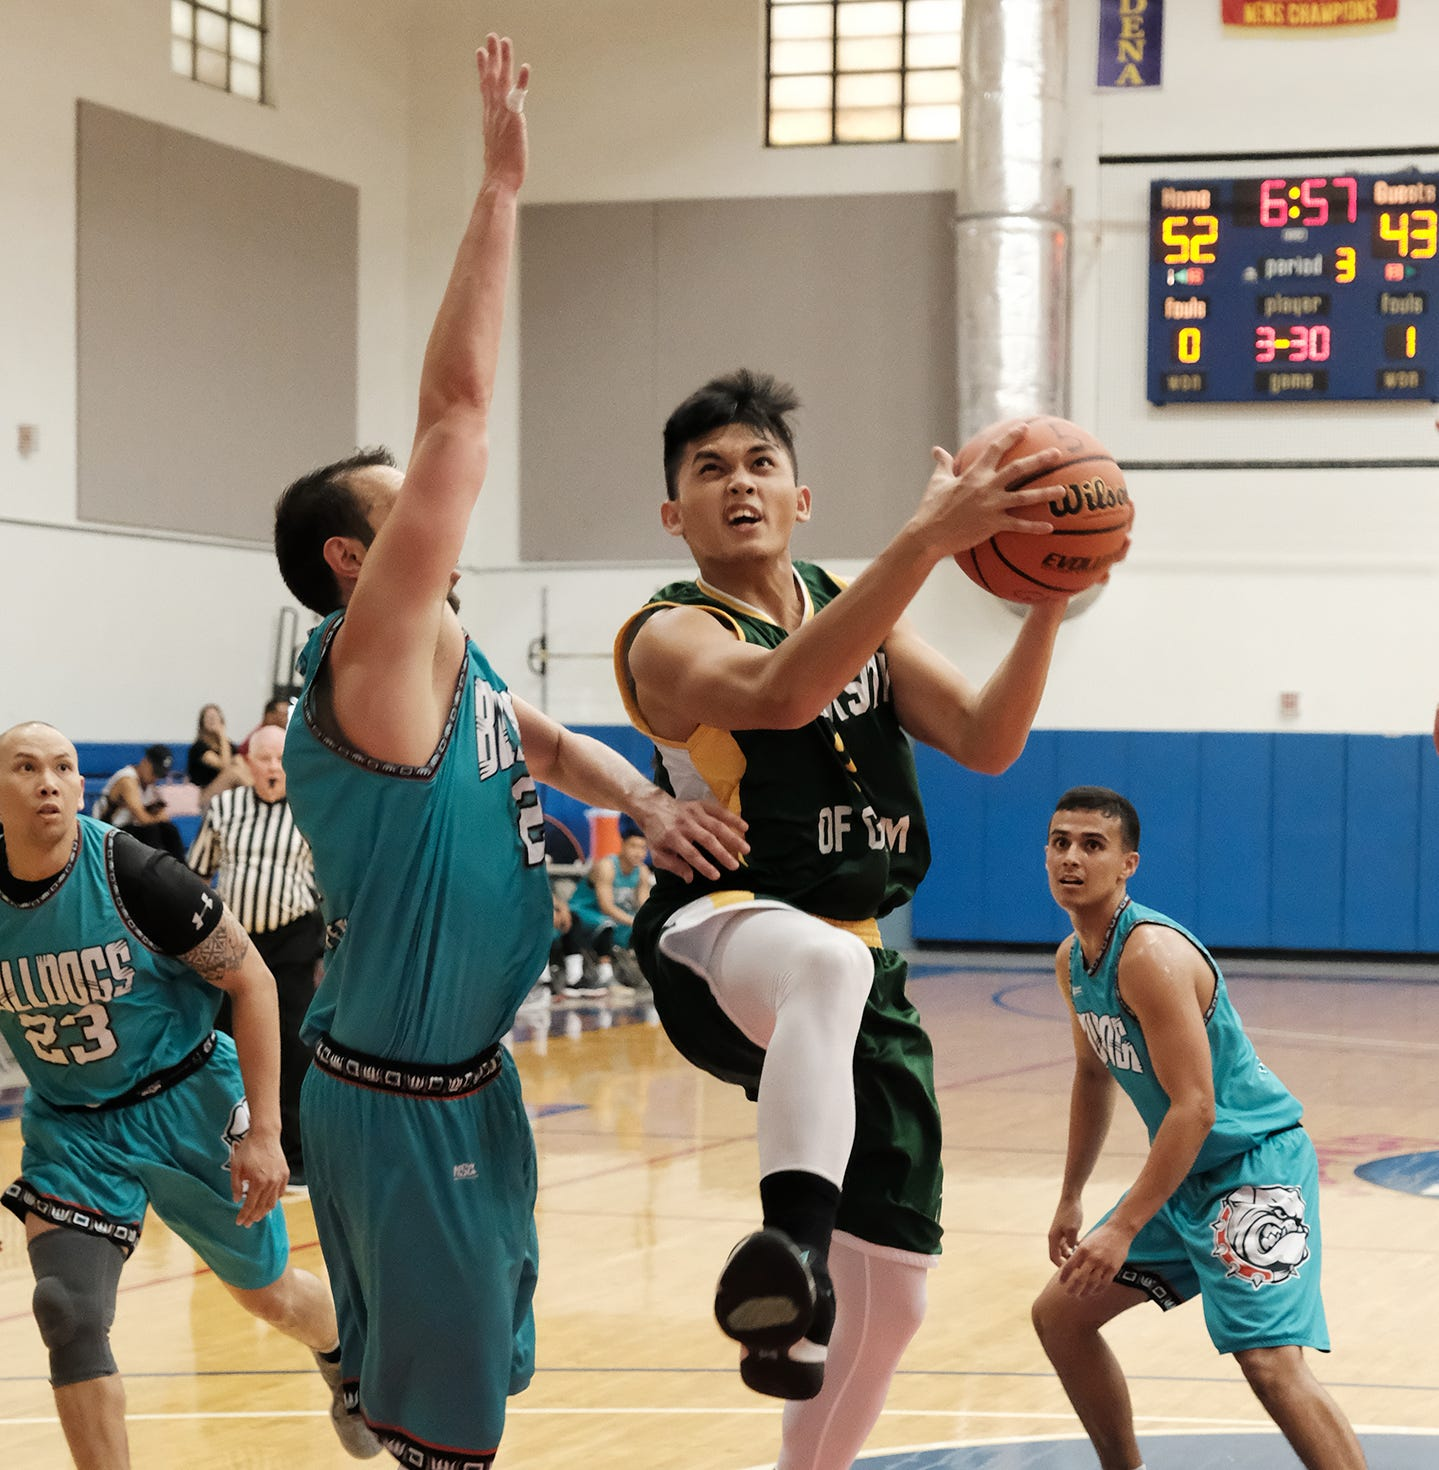 Sports Shorts: UOG to hold men's basketball tryouts